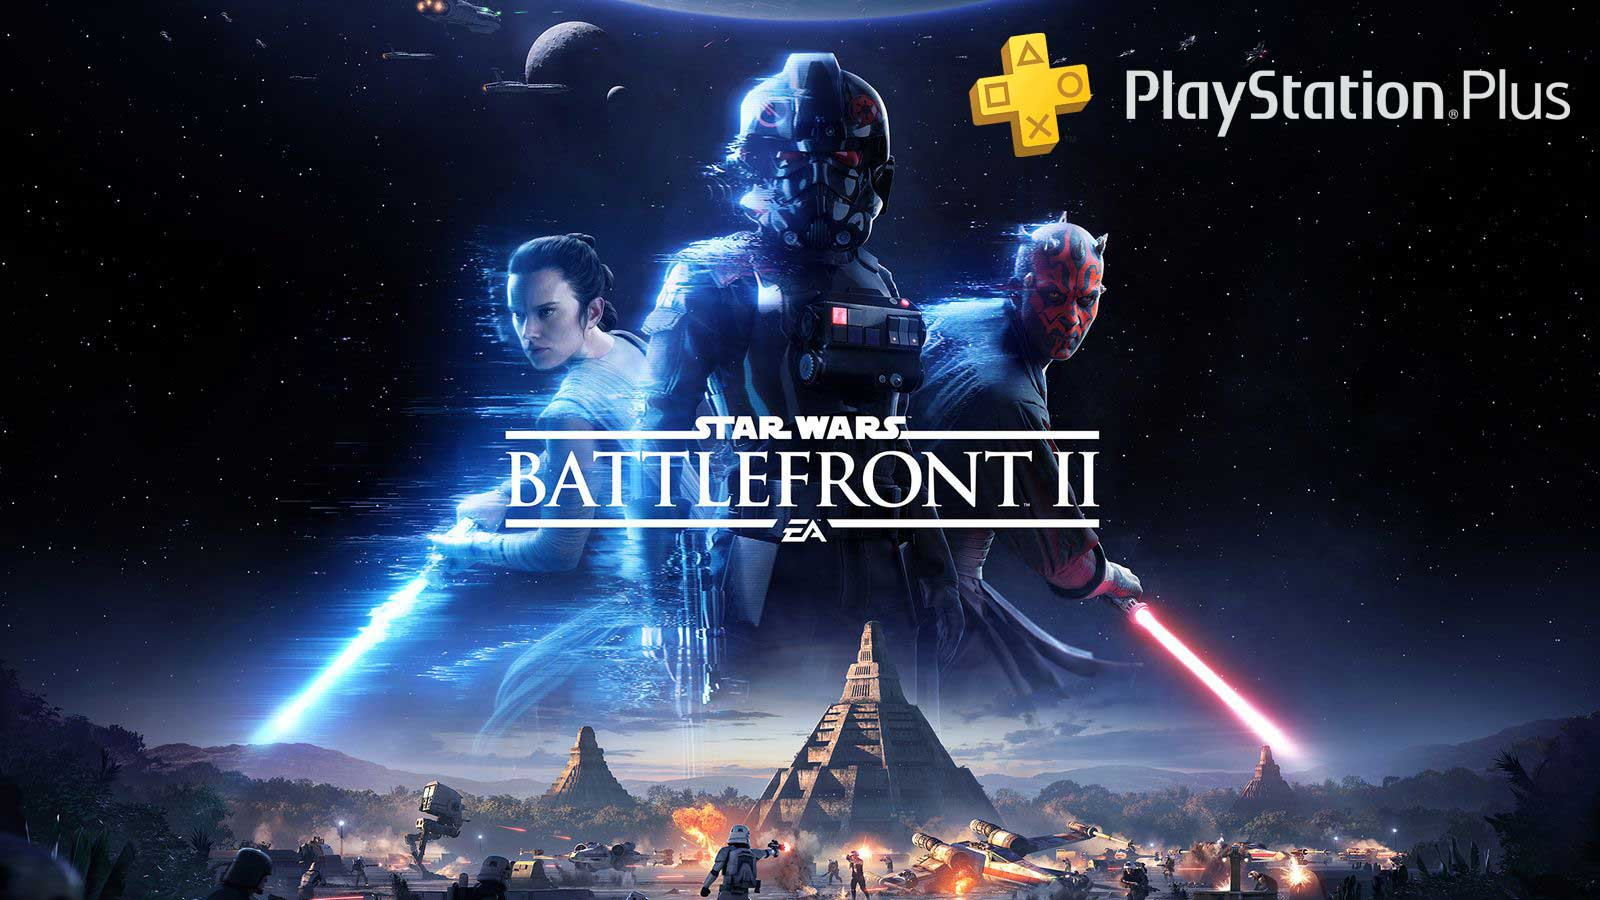 PlayStation Plus June 2020 Star Wars Battlefront II